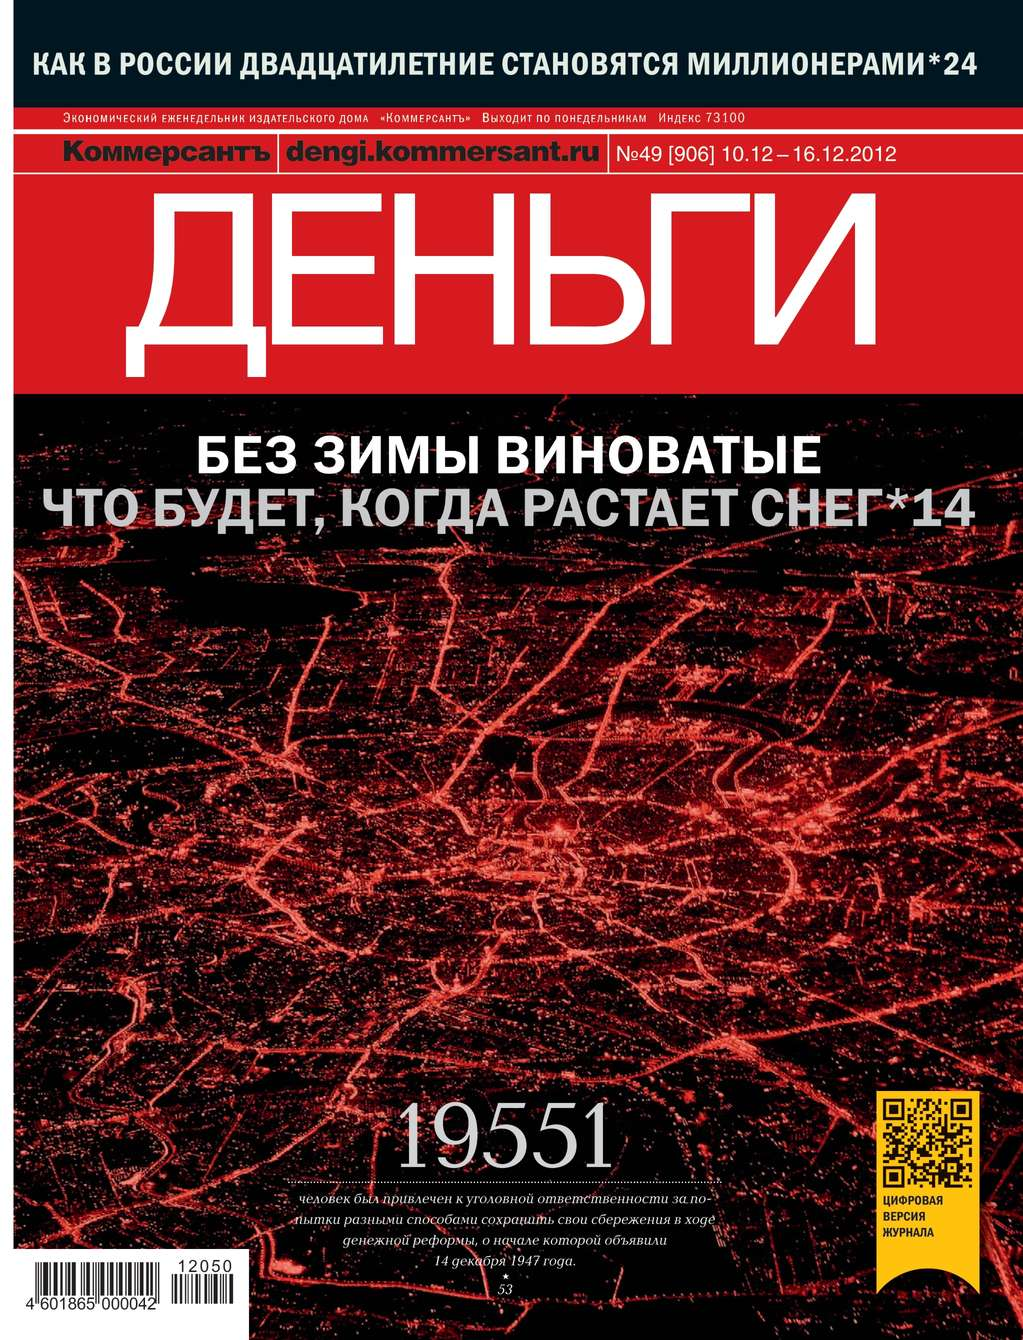 Kommersant Money 49-12-2012